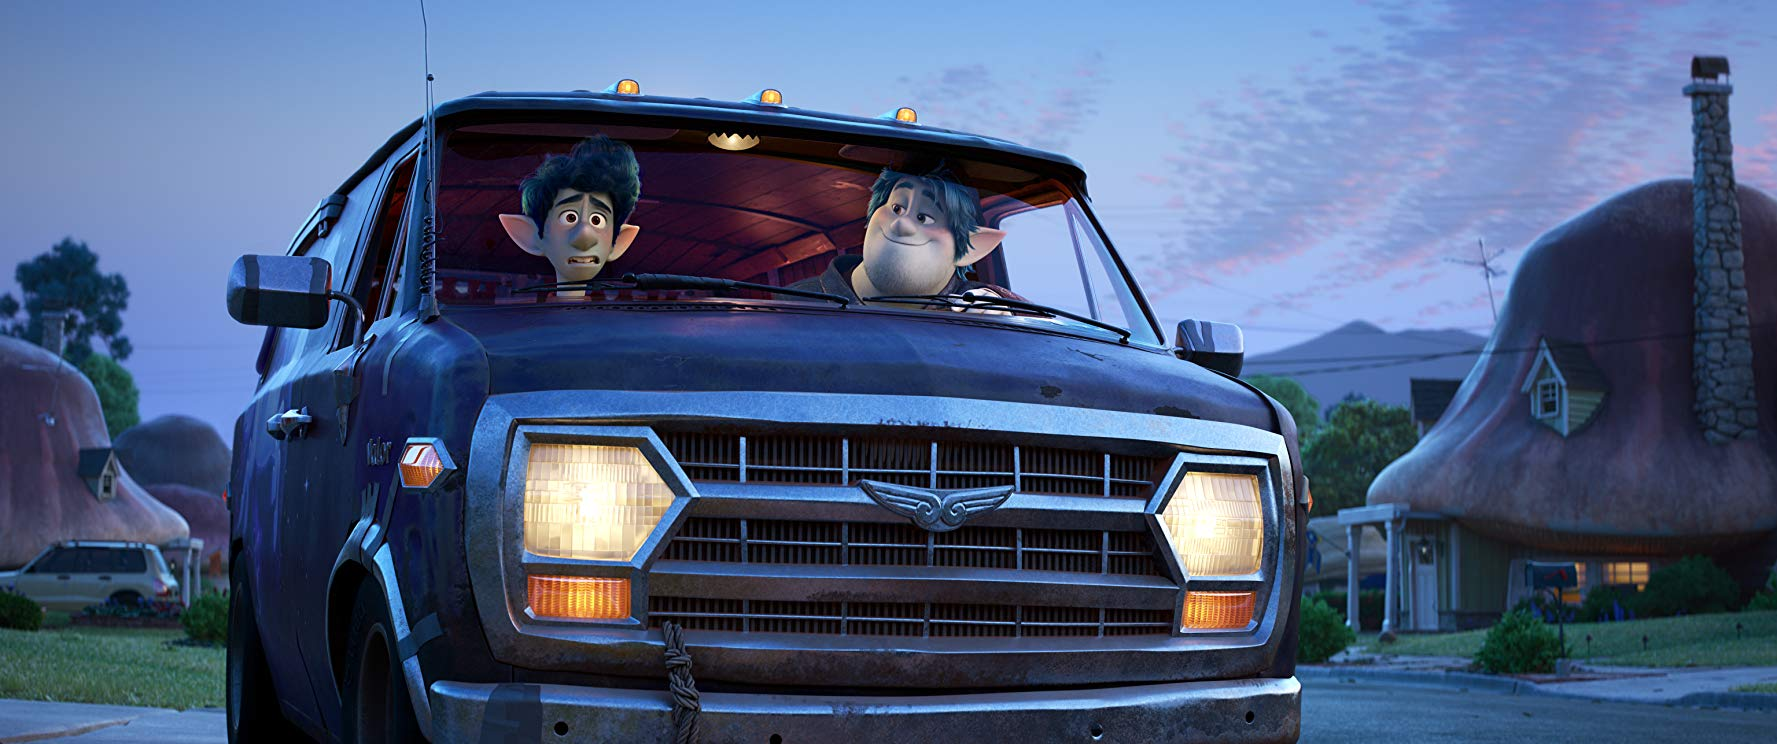 Moving 'Onward': The Personal Story Behind The Upcoming Disney/Pixar Feature